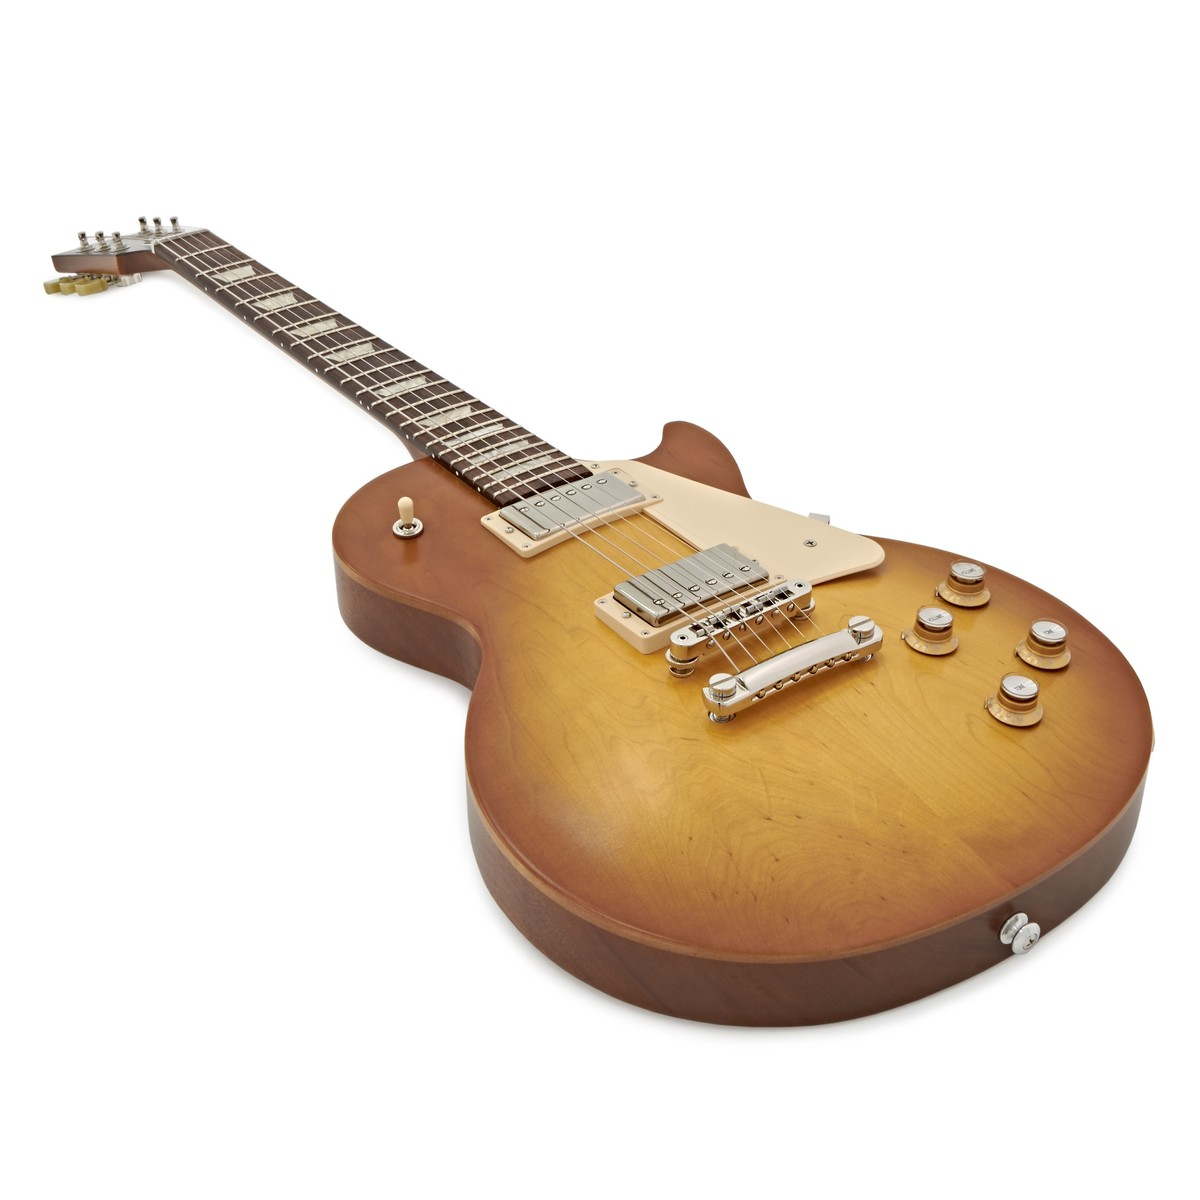 Gibson Les Paul Tribute T 2017 Faded Honey Burst At Gear4music Reed Smith Humbucker Wiring Diagram Electric Guitar Loading Zoom